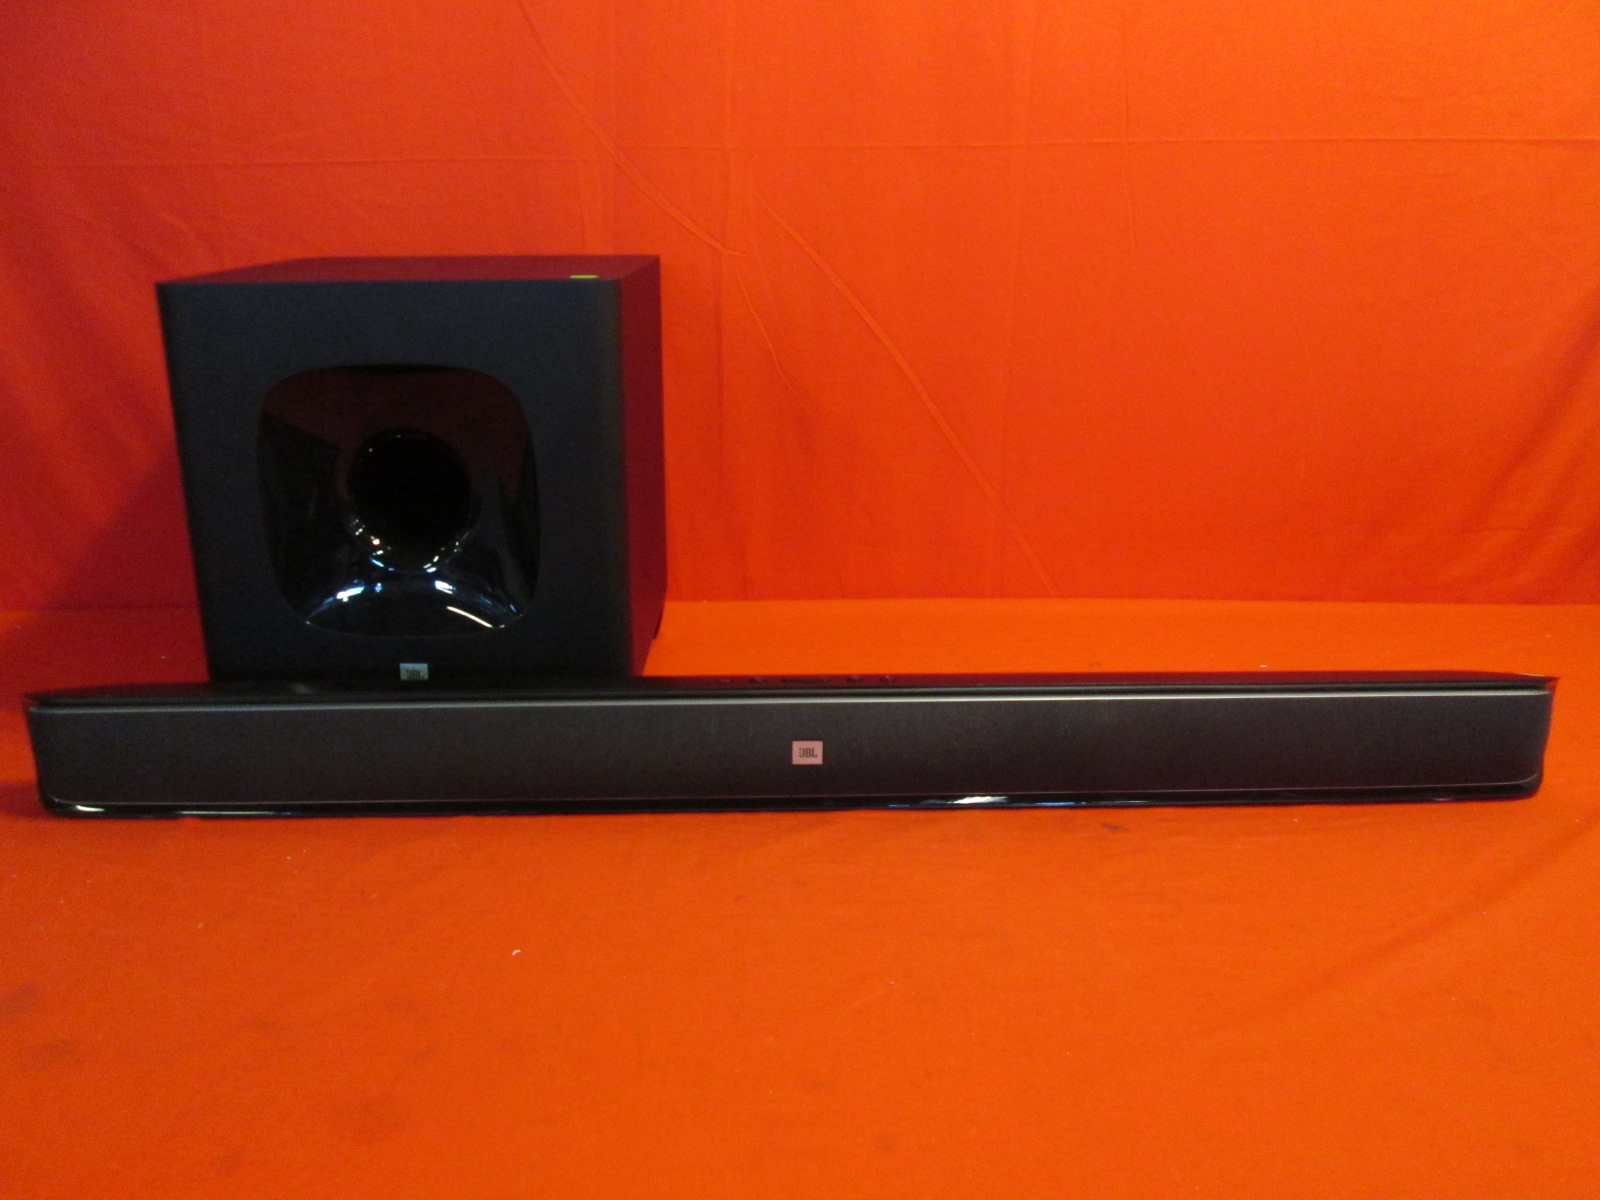 jbl cinema sb350 home cinema 2 1 soundbar wireless subwoofer. Black Bedroom Furniture Sets. Home Design Ideas